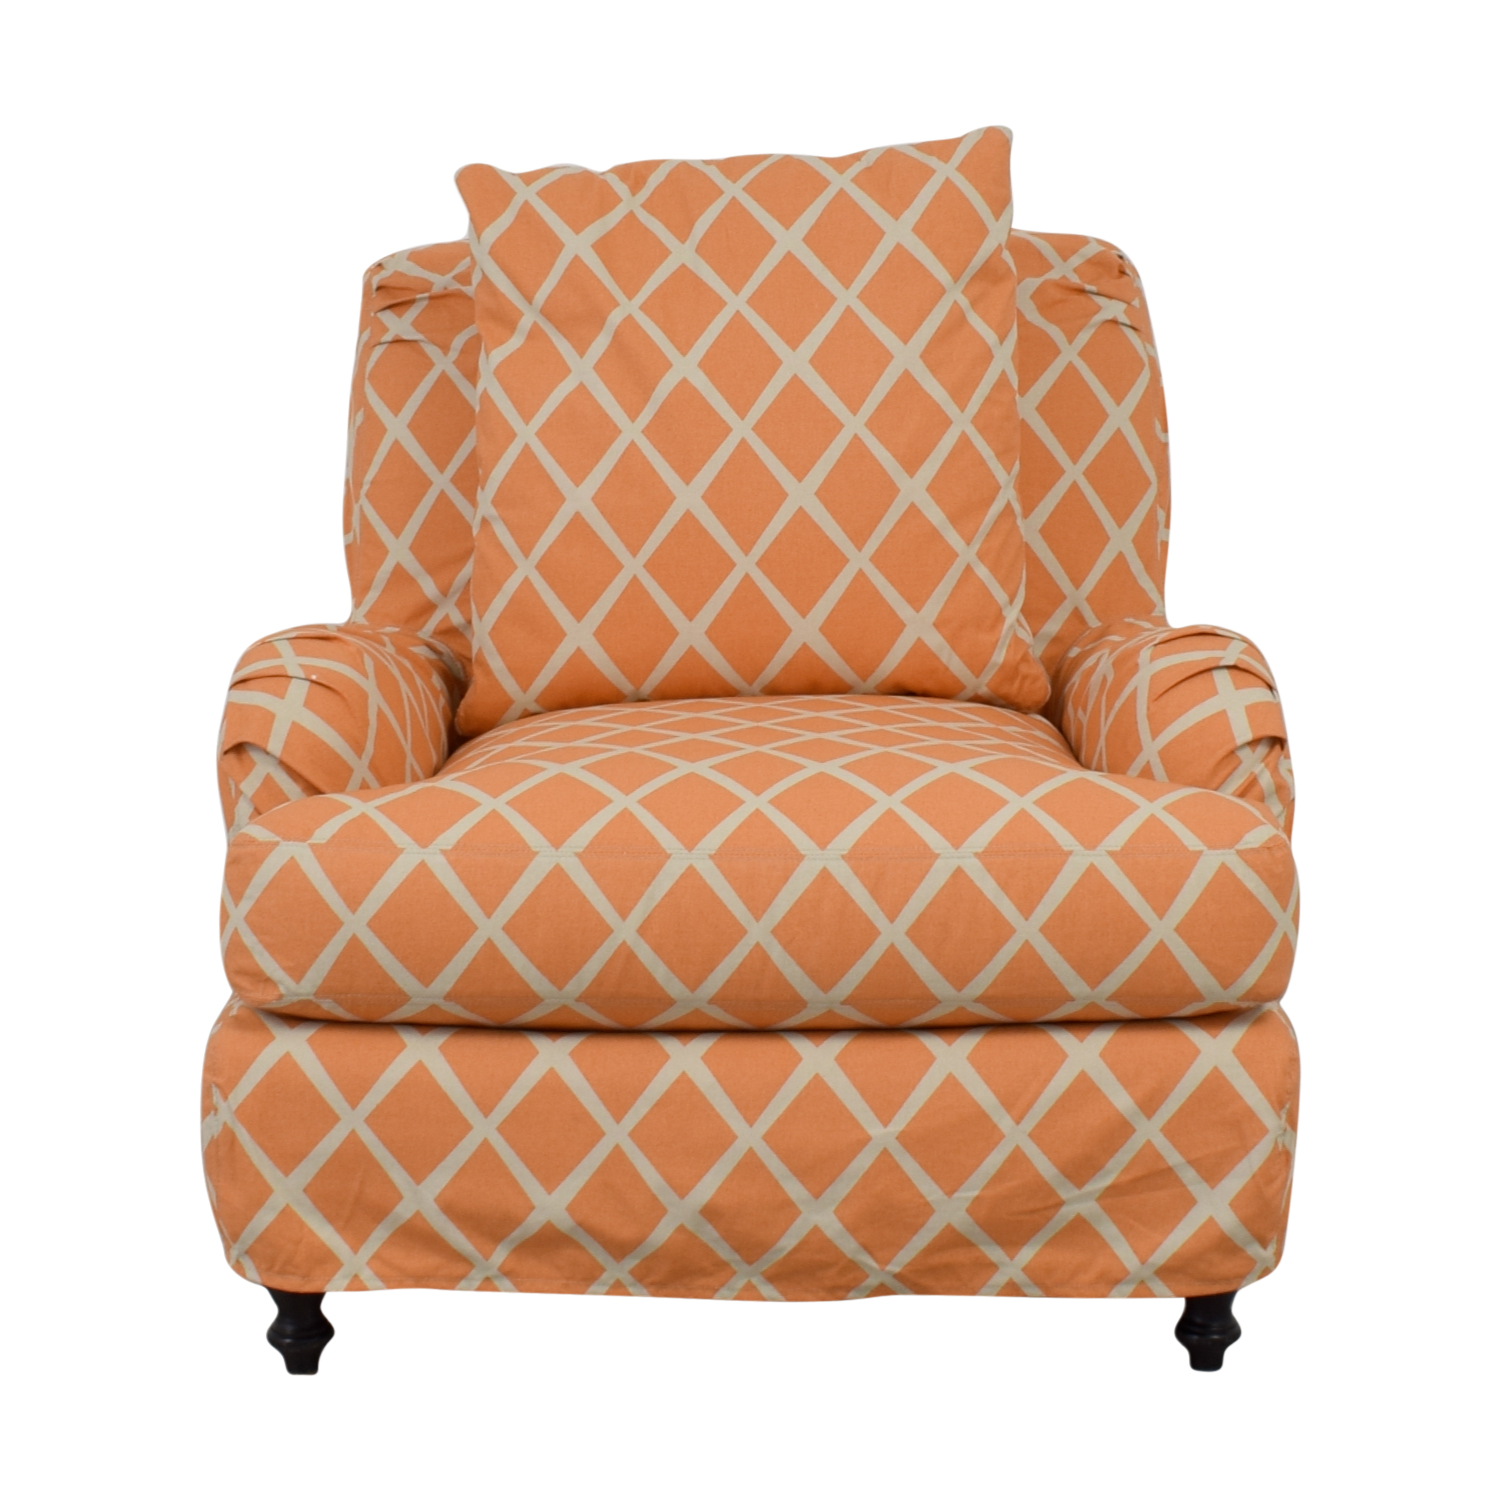 Lee Industries Lee Industries Orange and White  Accent Chair dimensions